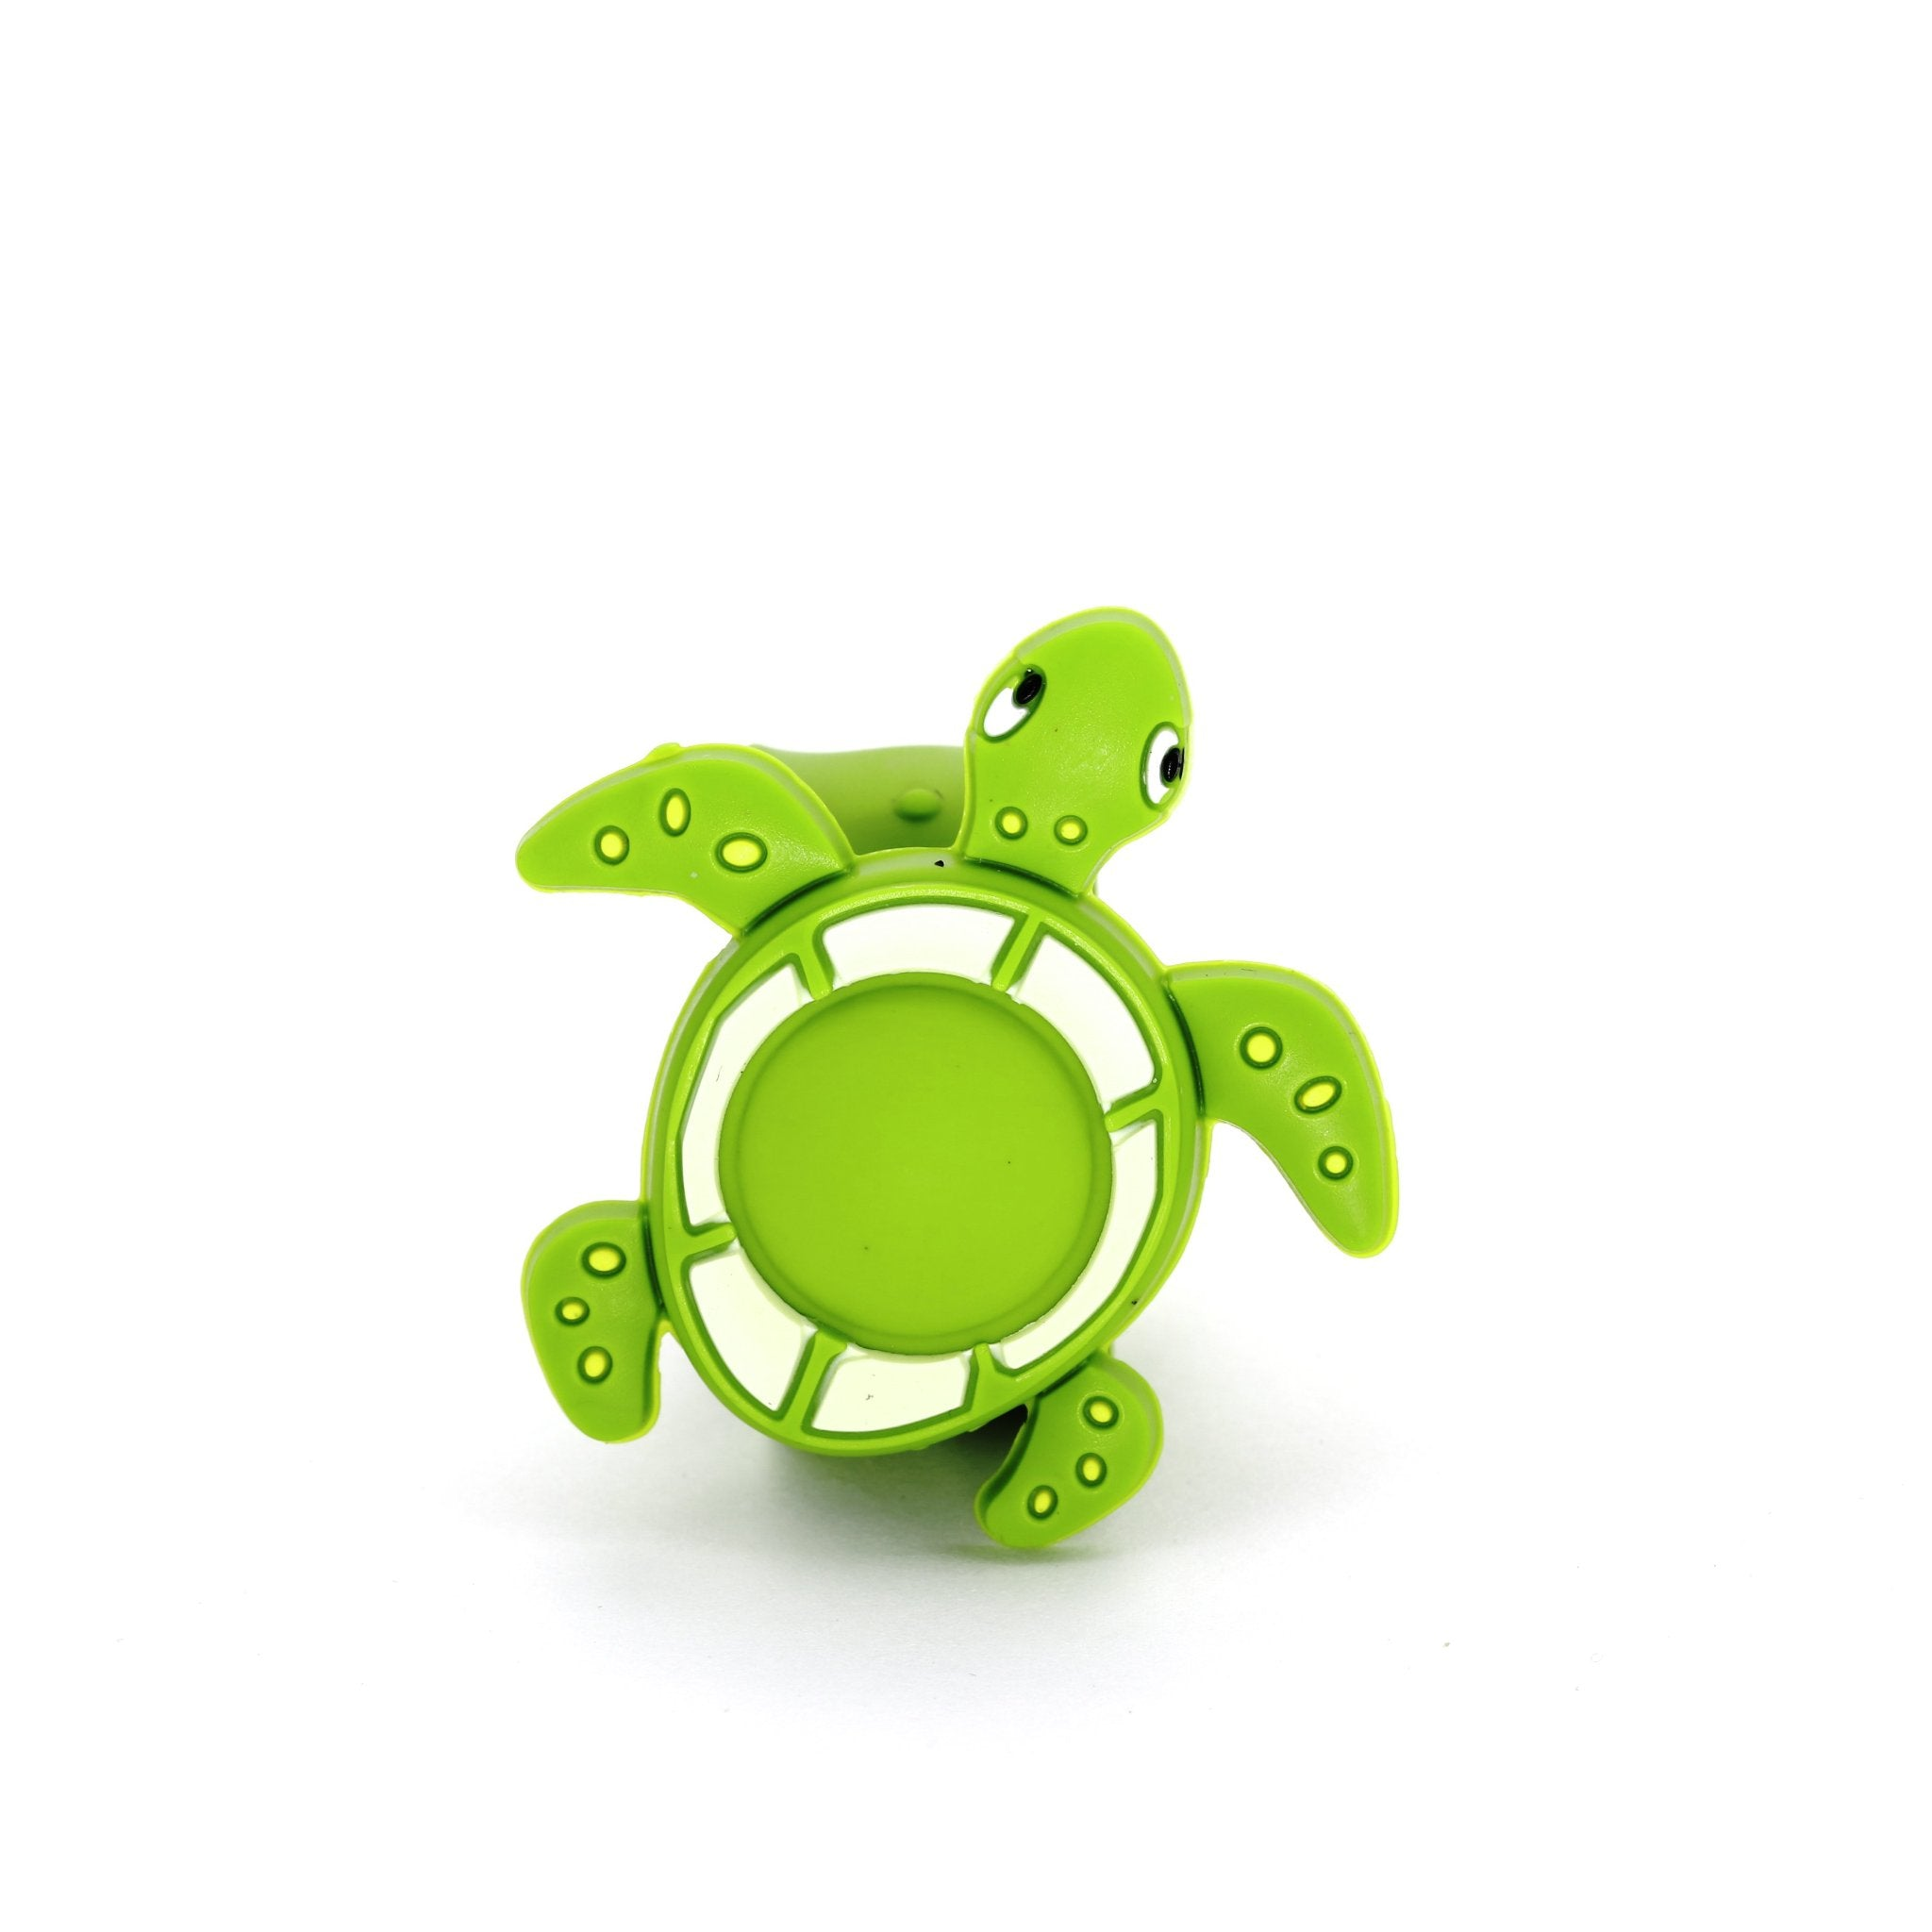 Slap-it Cartoon Mosquito Bands - Green Turtle